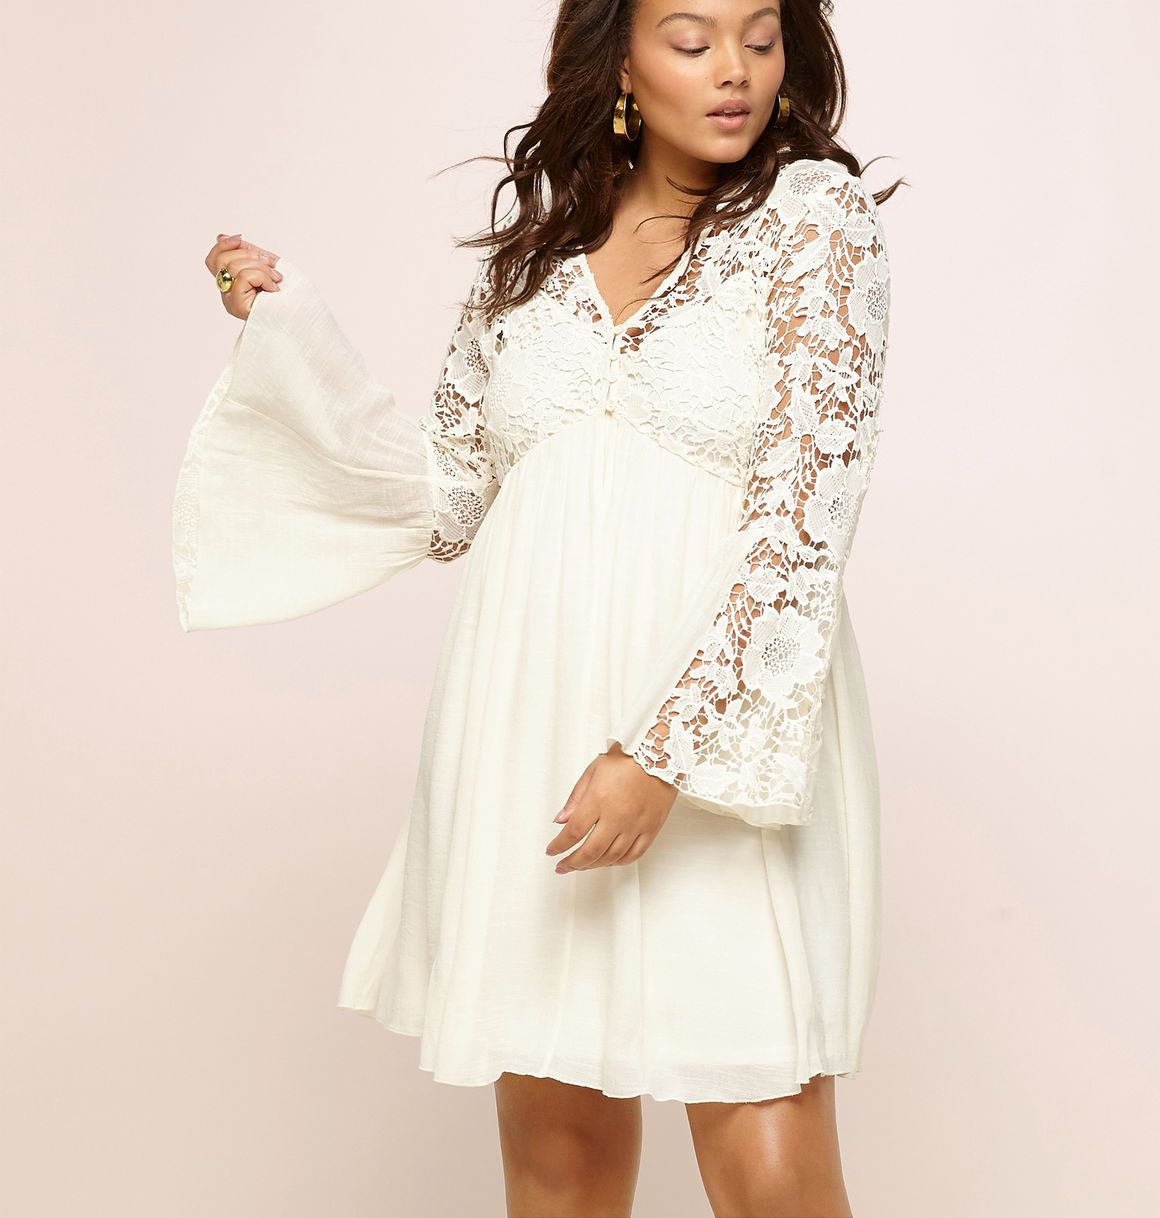 2e5035fbdcb4 Find romantic plus size dress styles like the Crochet Babydoll Dress  available online at loralette.com. Avenue Store